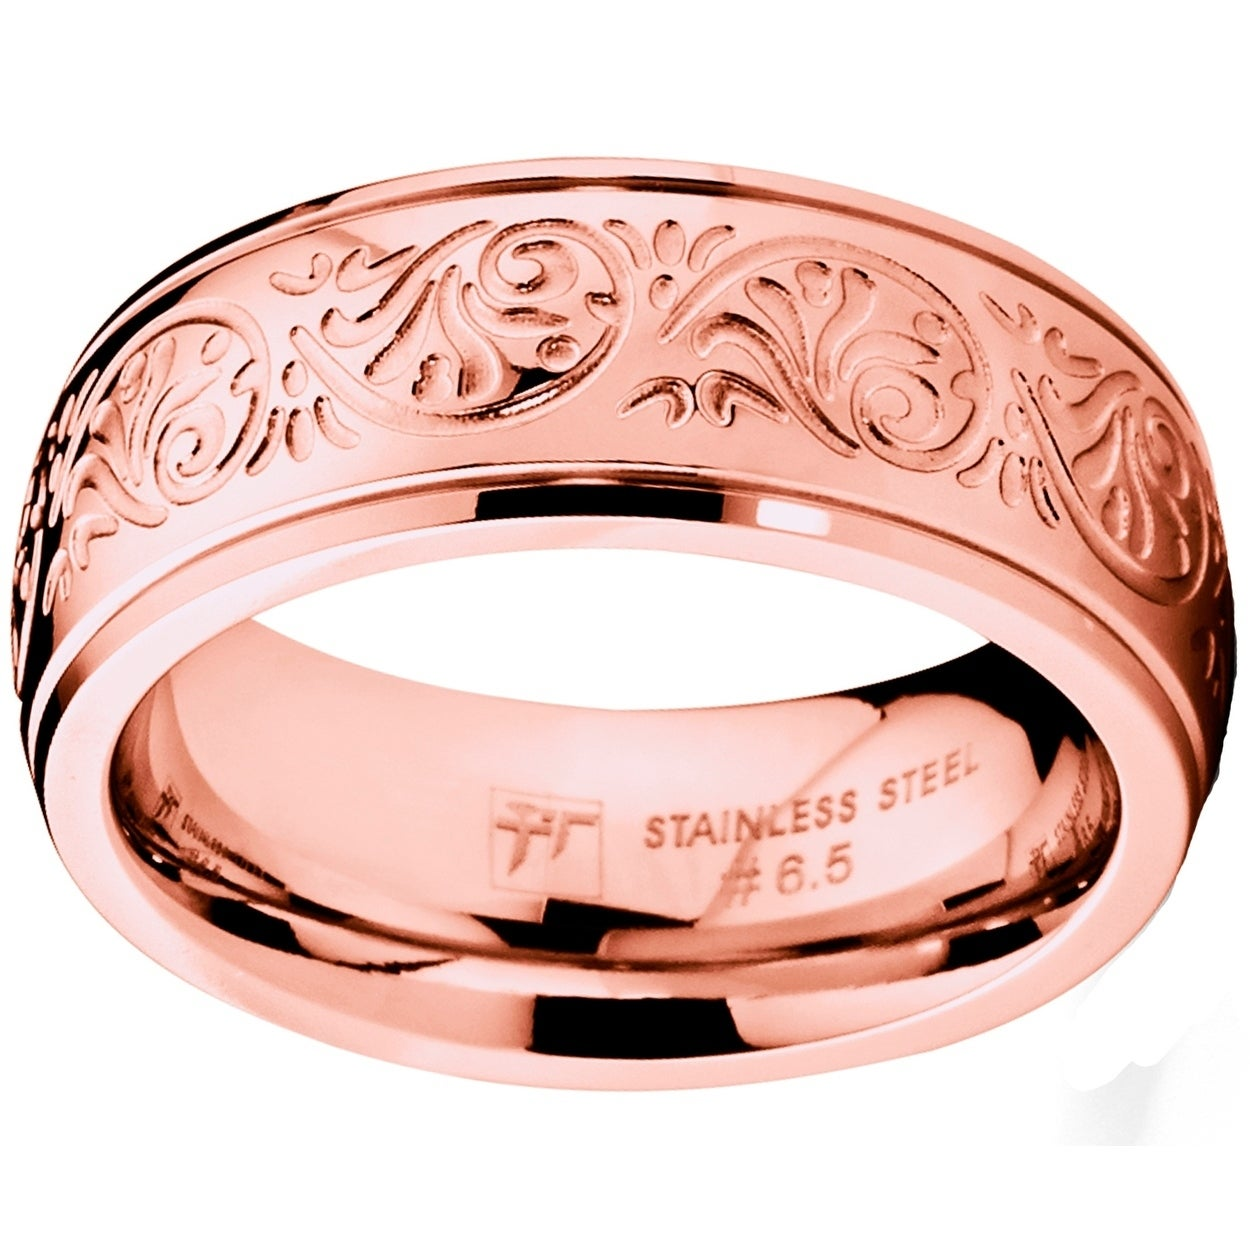 Shop Oliveti Rosegold Stainless Steel Women\'s Wedding Band Ring ...